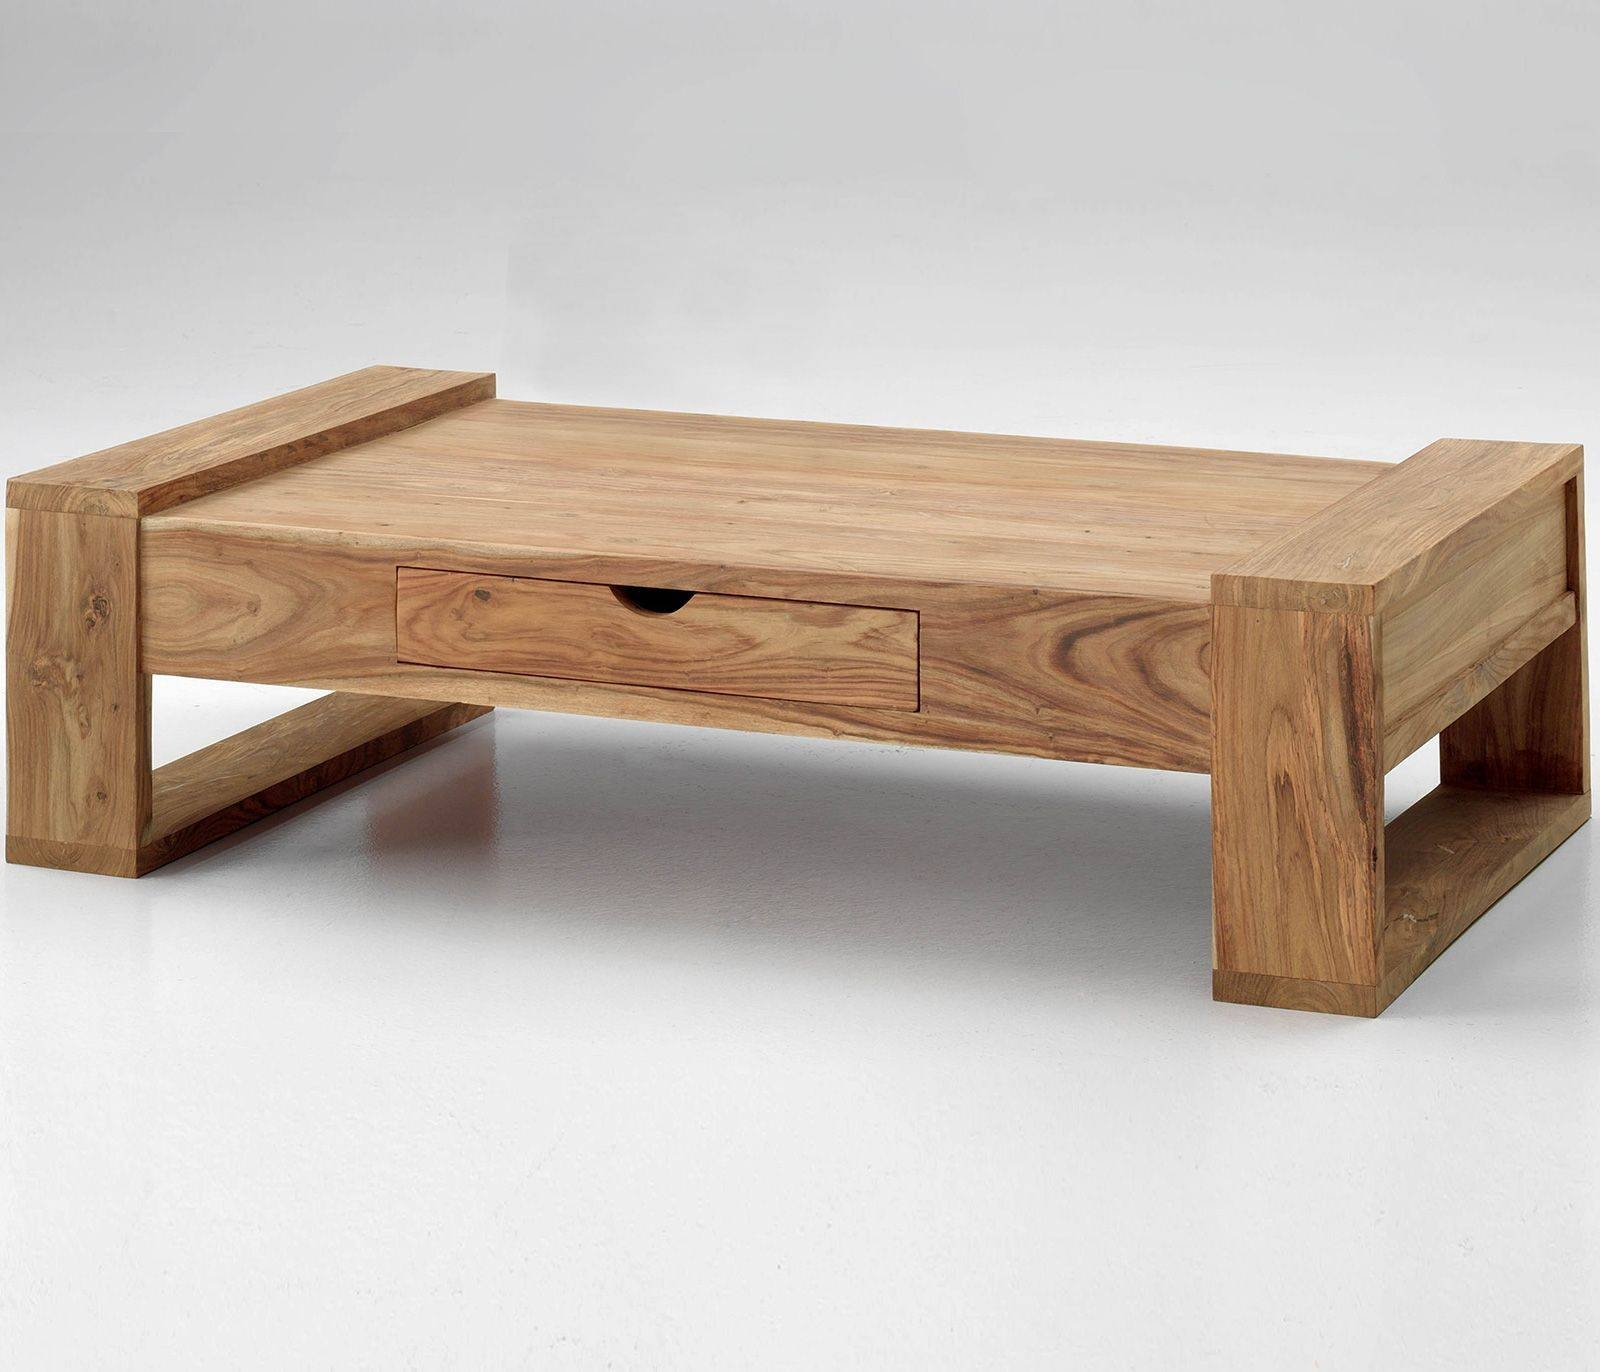 Furniture: Raw Wood Coffee Table | Wooden Coffee Table | Ikea with Wooden Coffee Tables (Image 7 of 15)